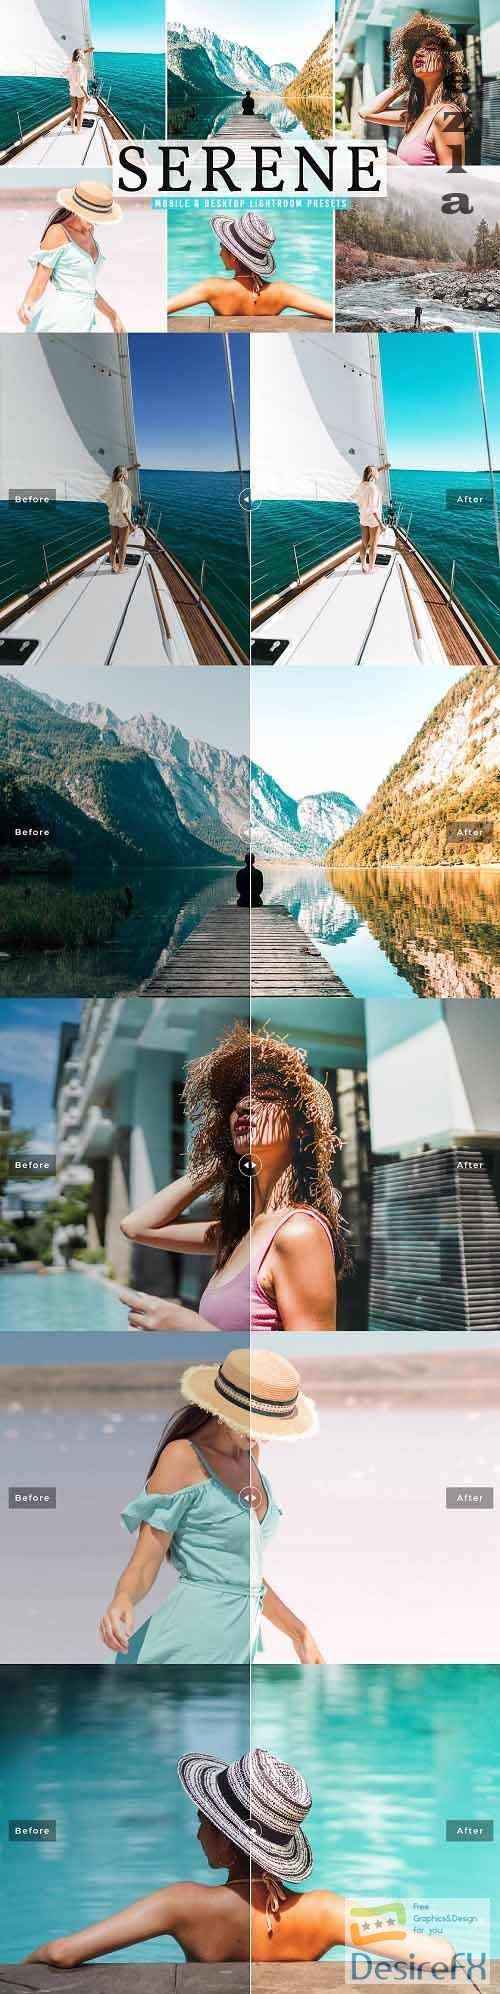 Serene Pro Lightroom Presets - 5729359 - Mobile & Desktop